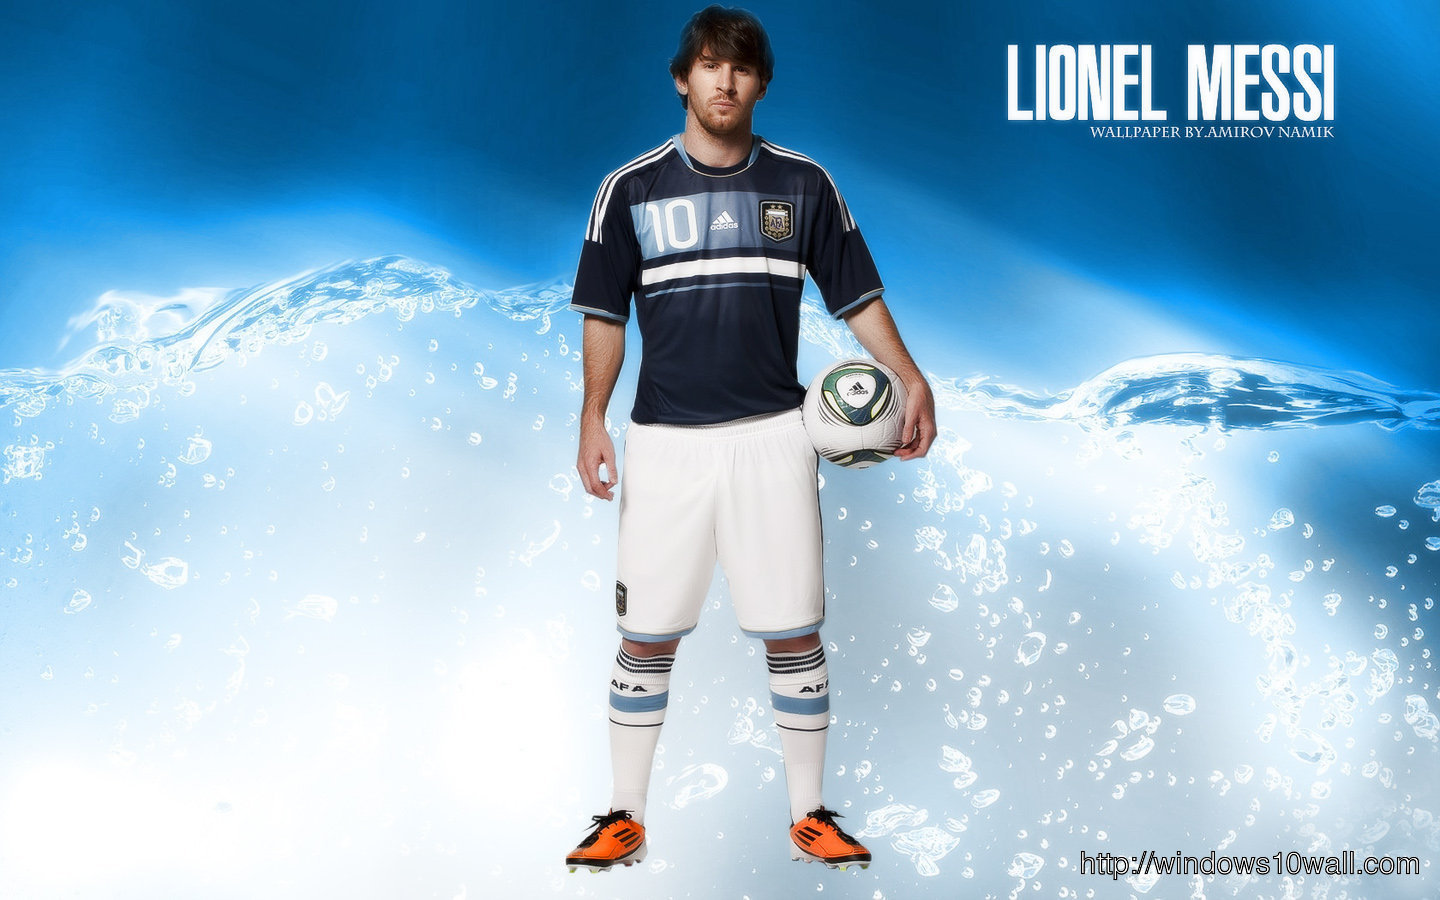 Lionel Messi Football Star of Argentina